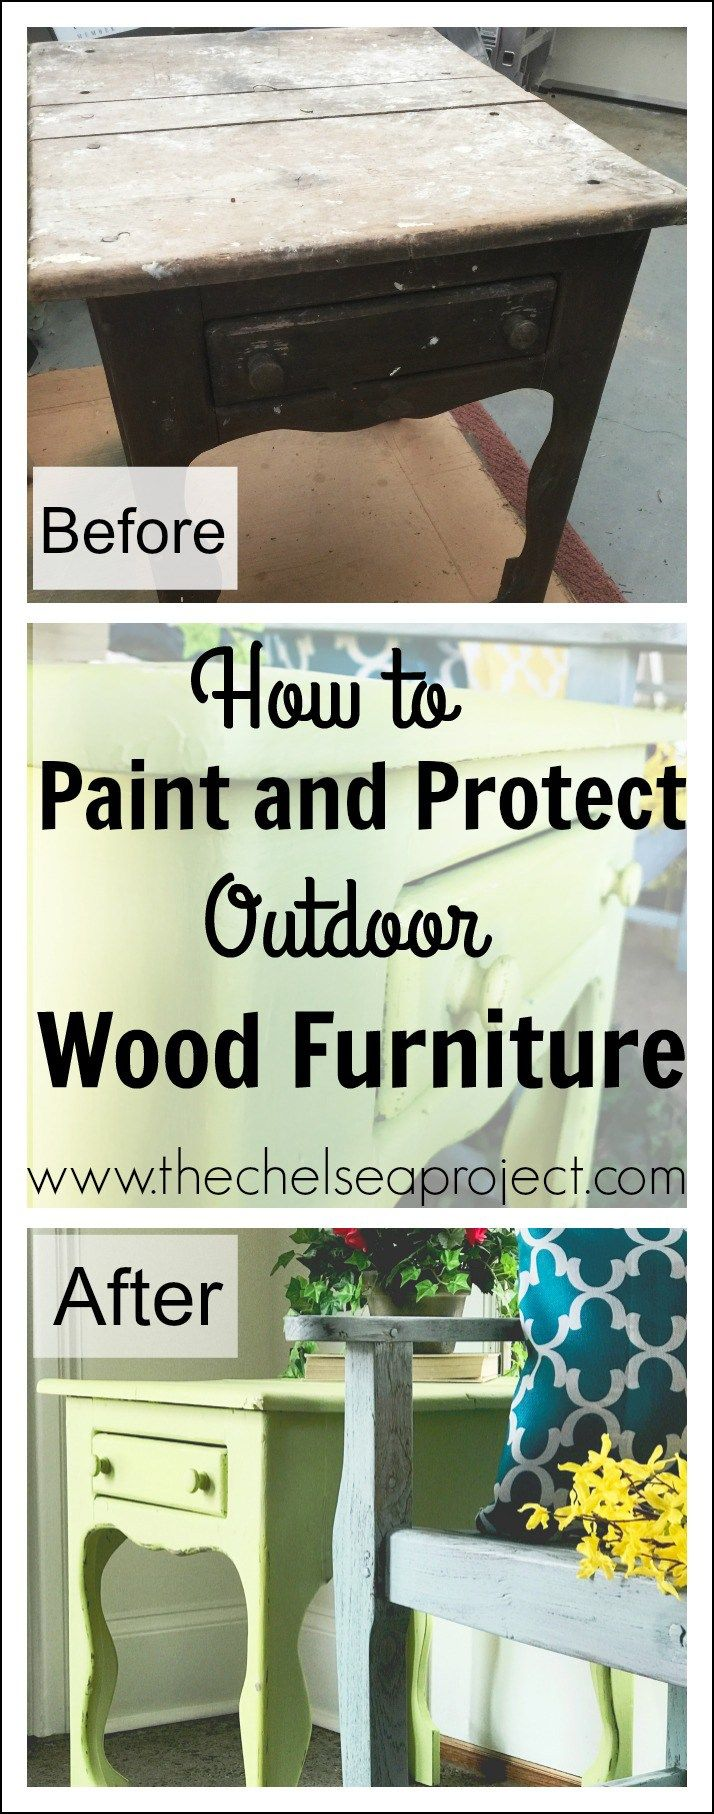 Outdoor wood furniture - How To Paint And Protect Outdoor Wood Furniture